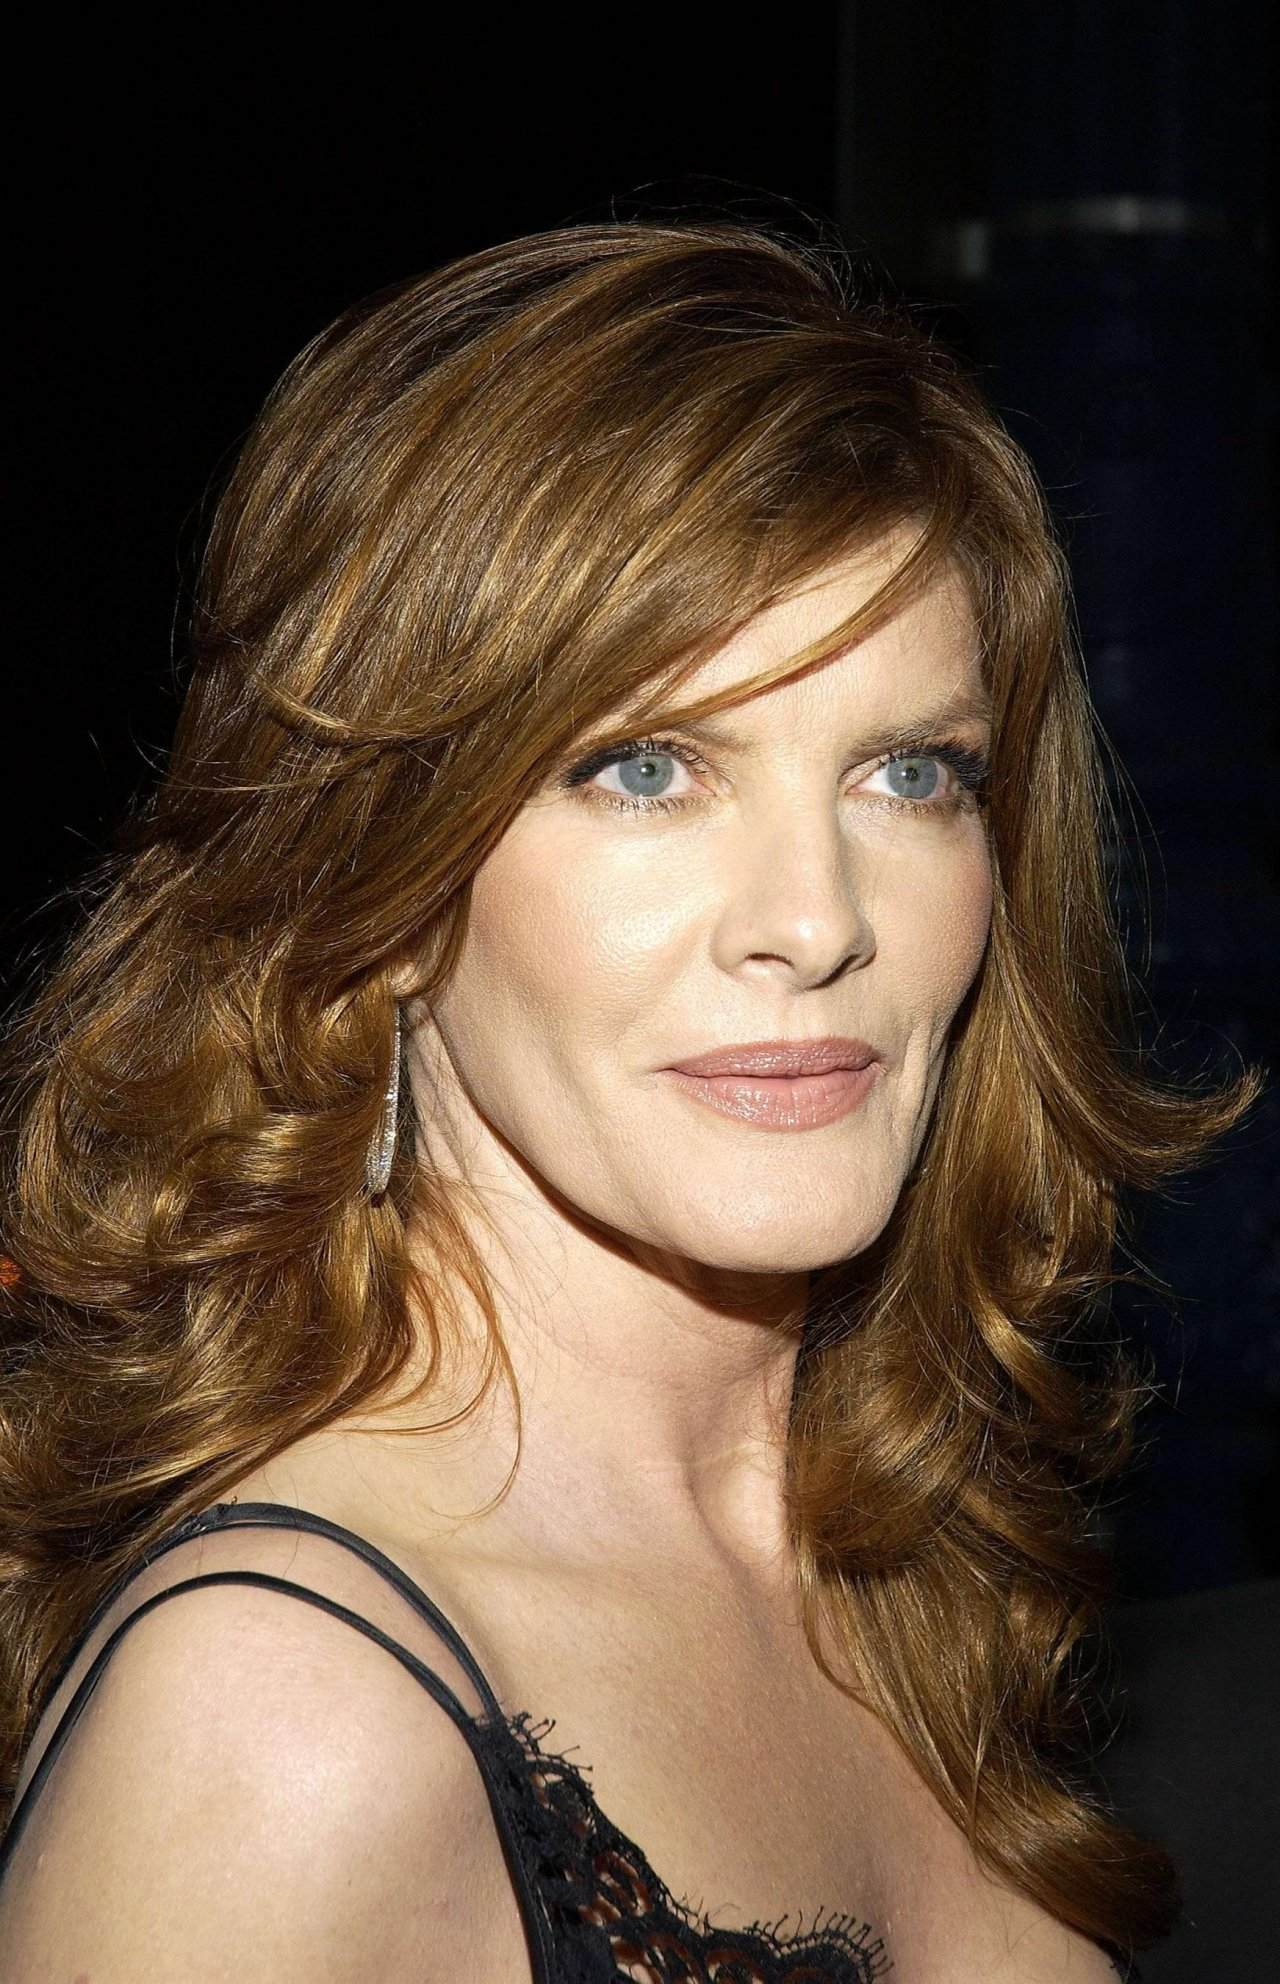 Rene Russo leaked wallpapers